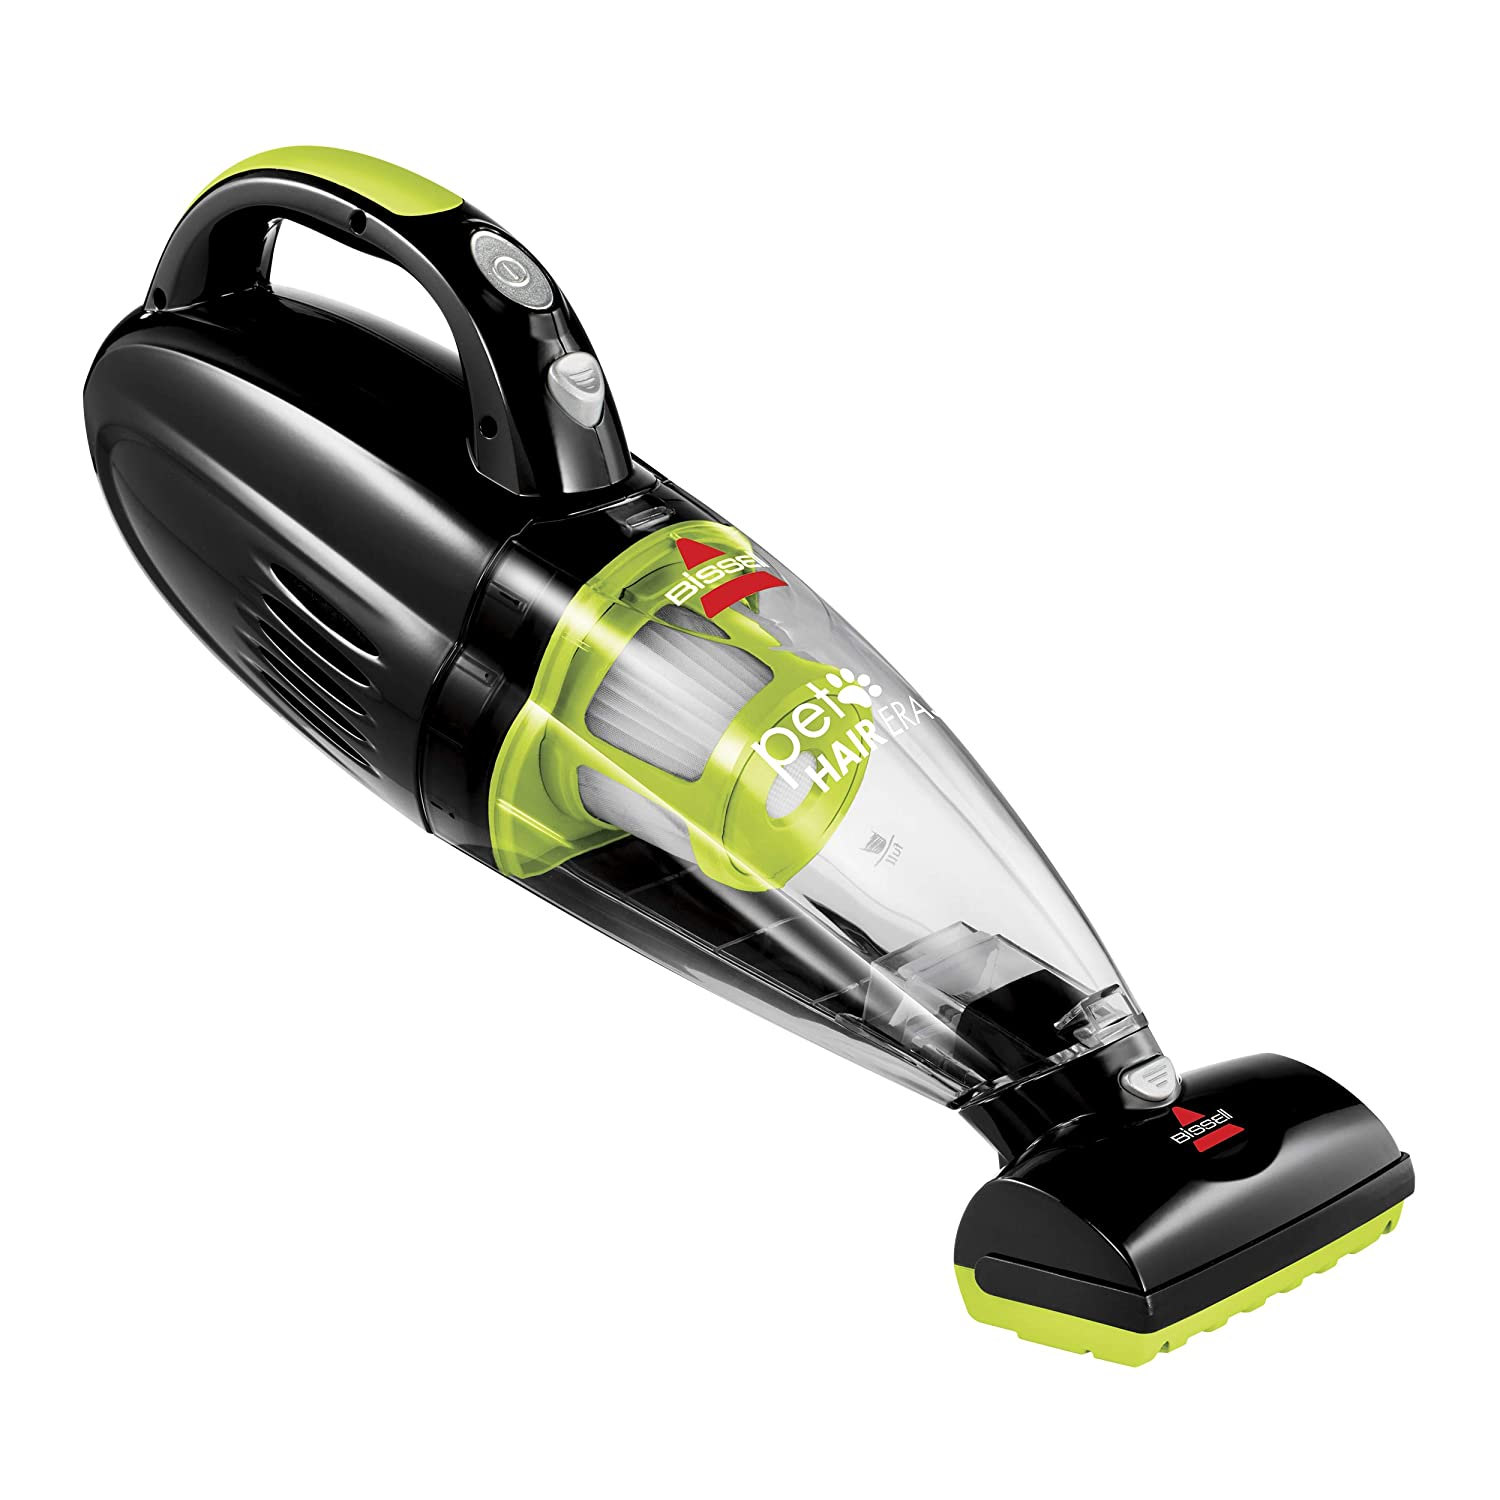 Bissell 1782 Pet Hair Eraser Cordless Hand and Car Vacuum Green/Black